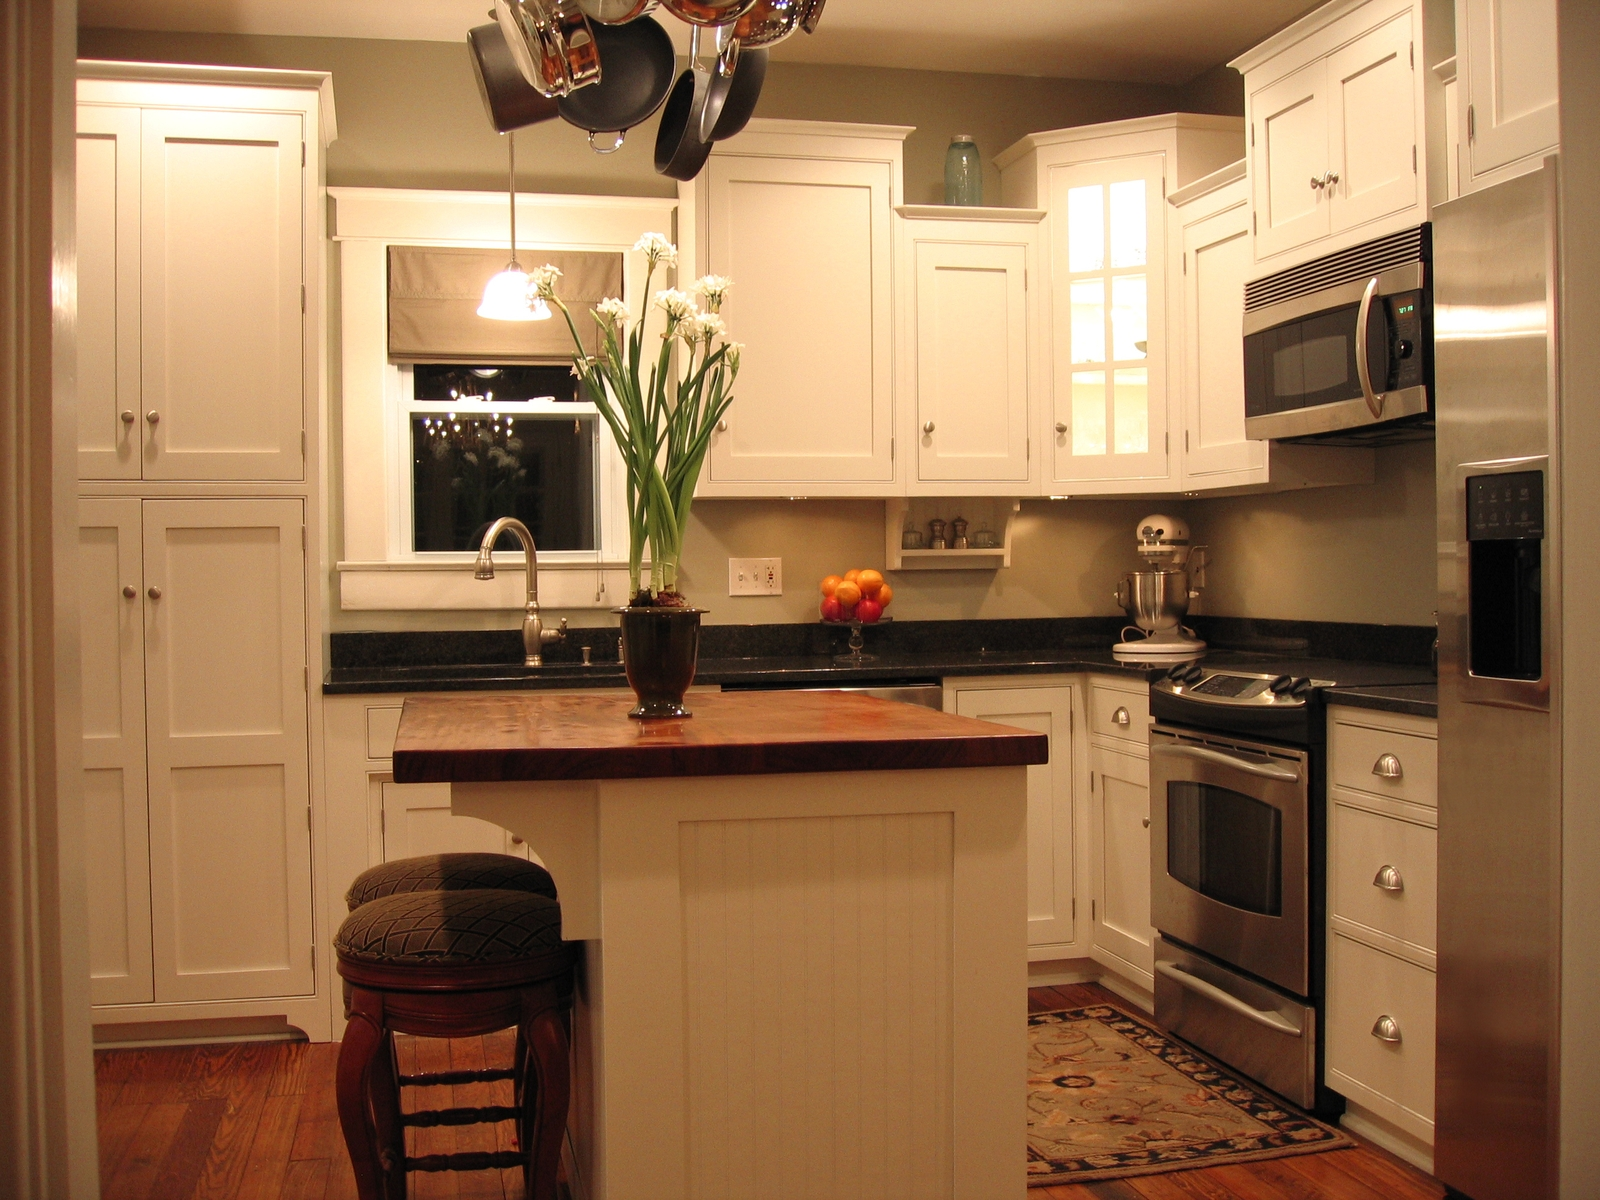 pictures of small kitchen islands photo - 2